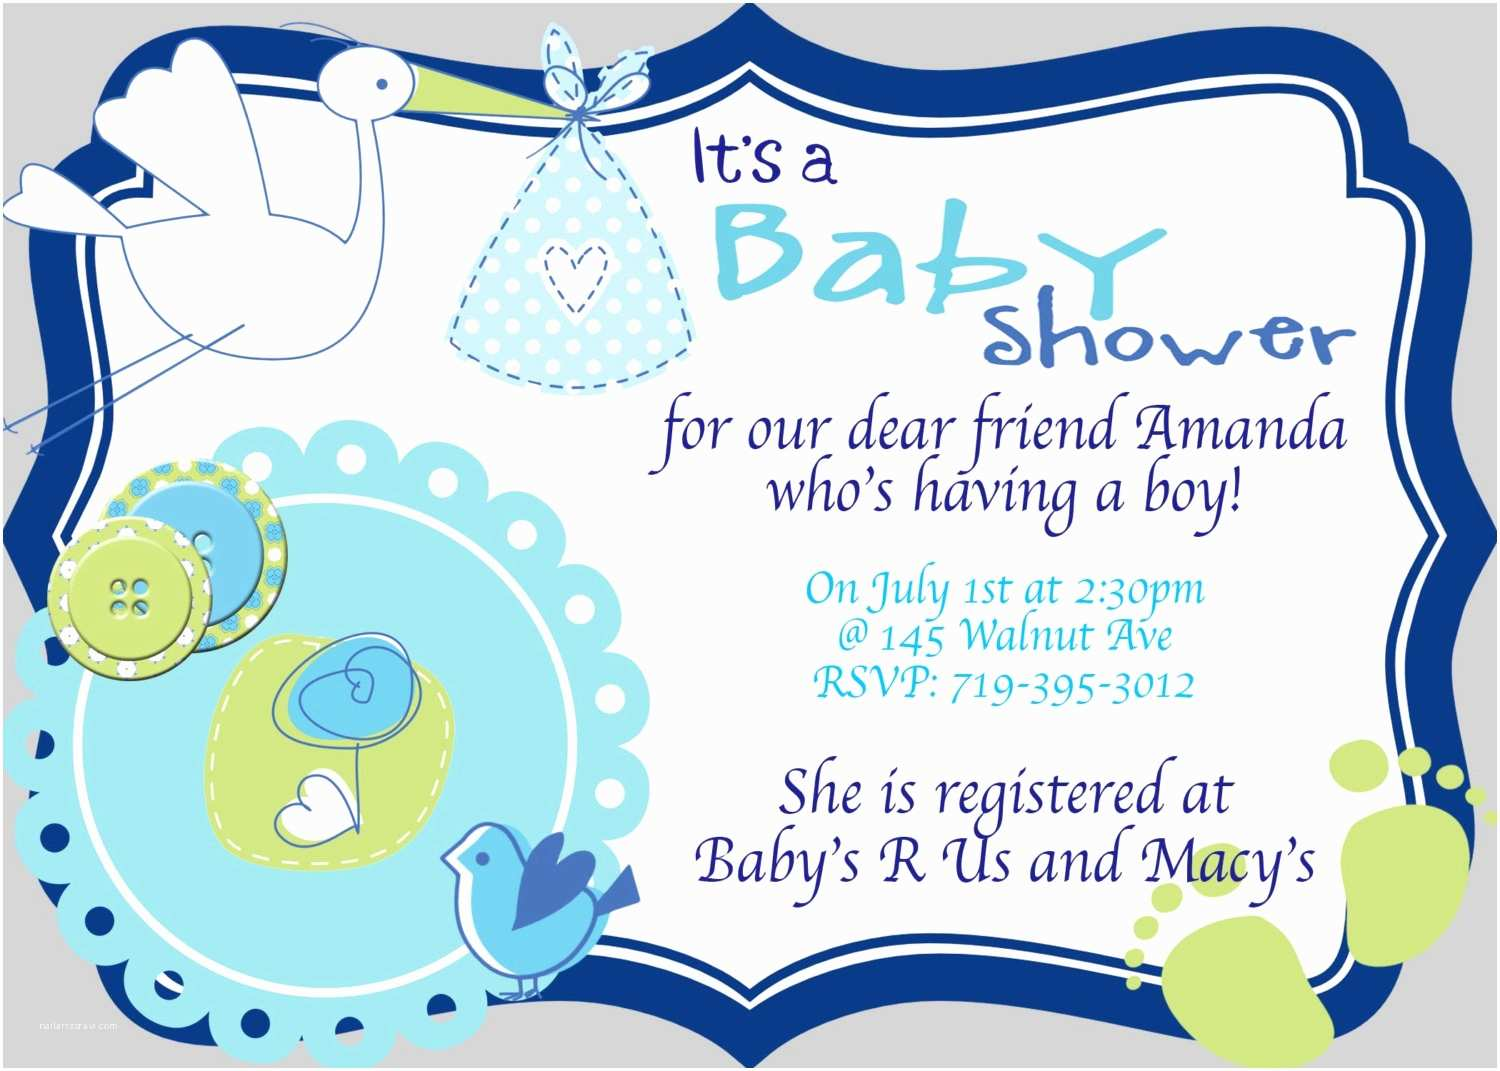 Baby Shower Invitation Wording For A  Some Ideas To Make Great Baby Shower